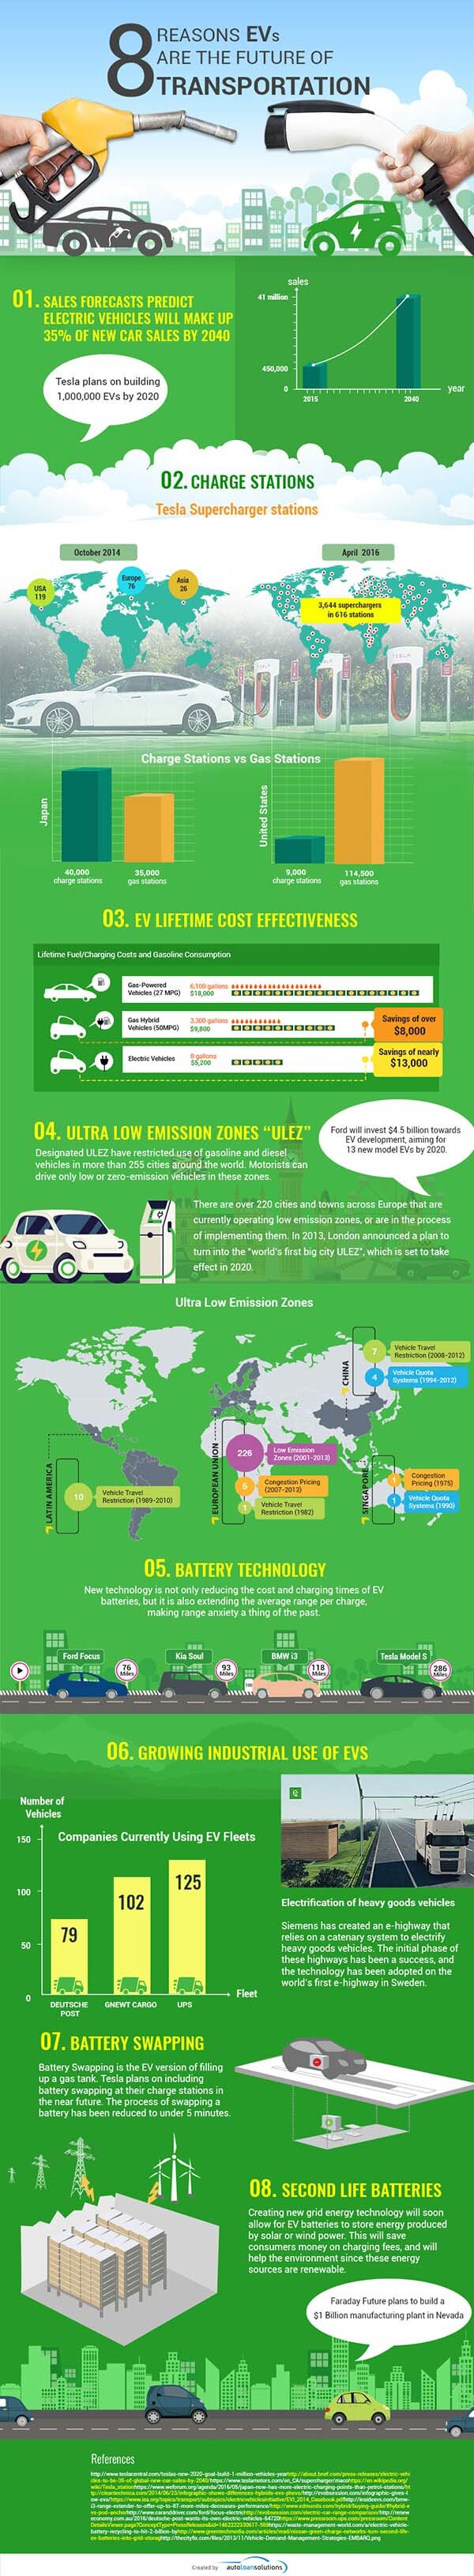 electric-vehicles-are-the-future-infographic